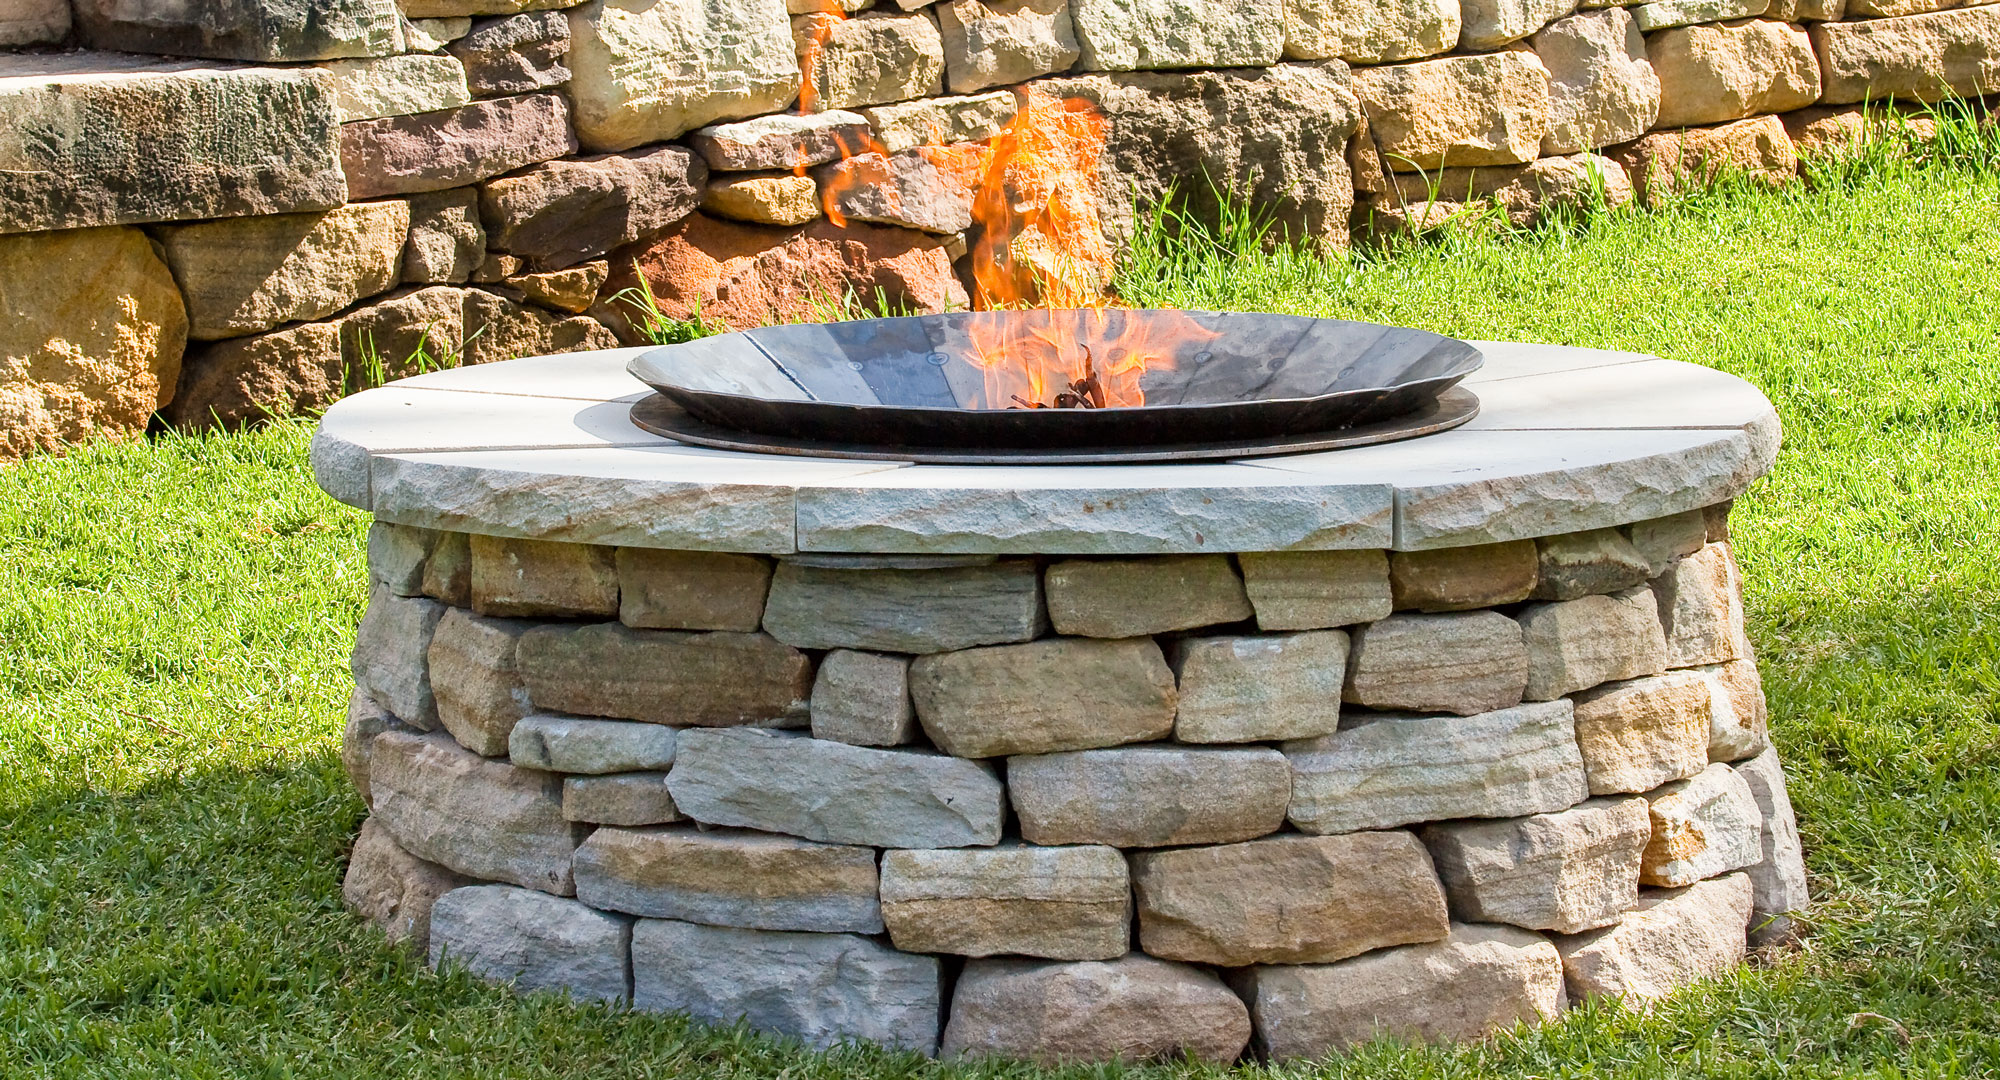 Make Your Own Outdoor Fireplace Make Your Own Backyard Fire Pit Diy Gardening Craft